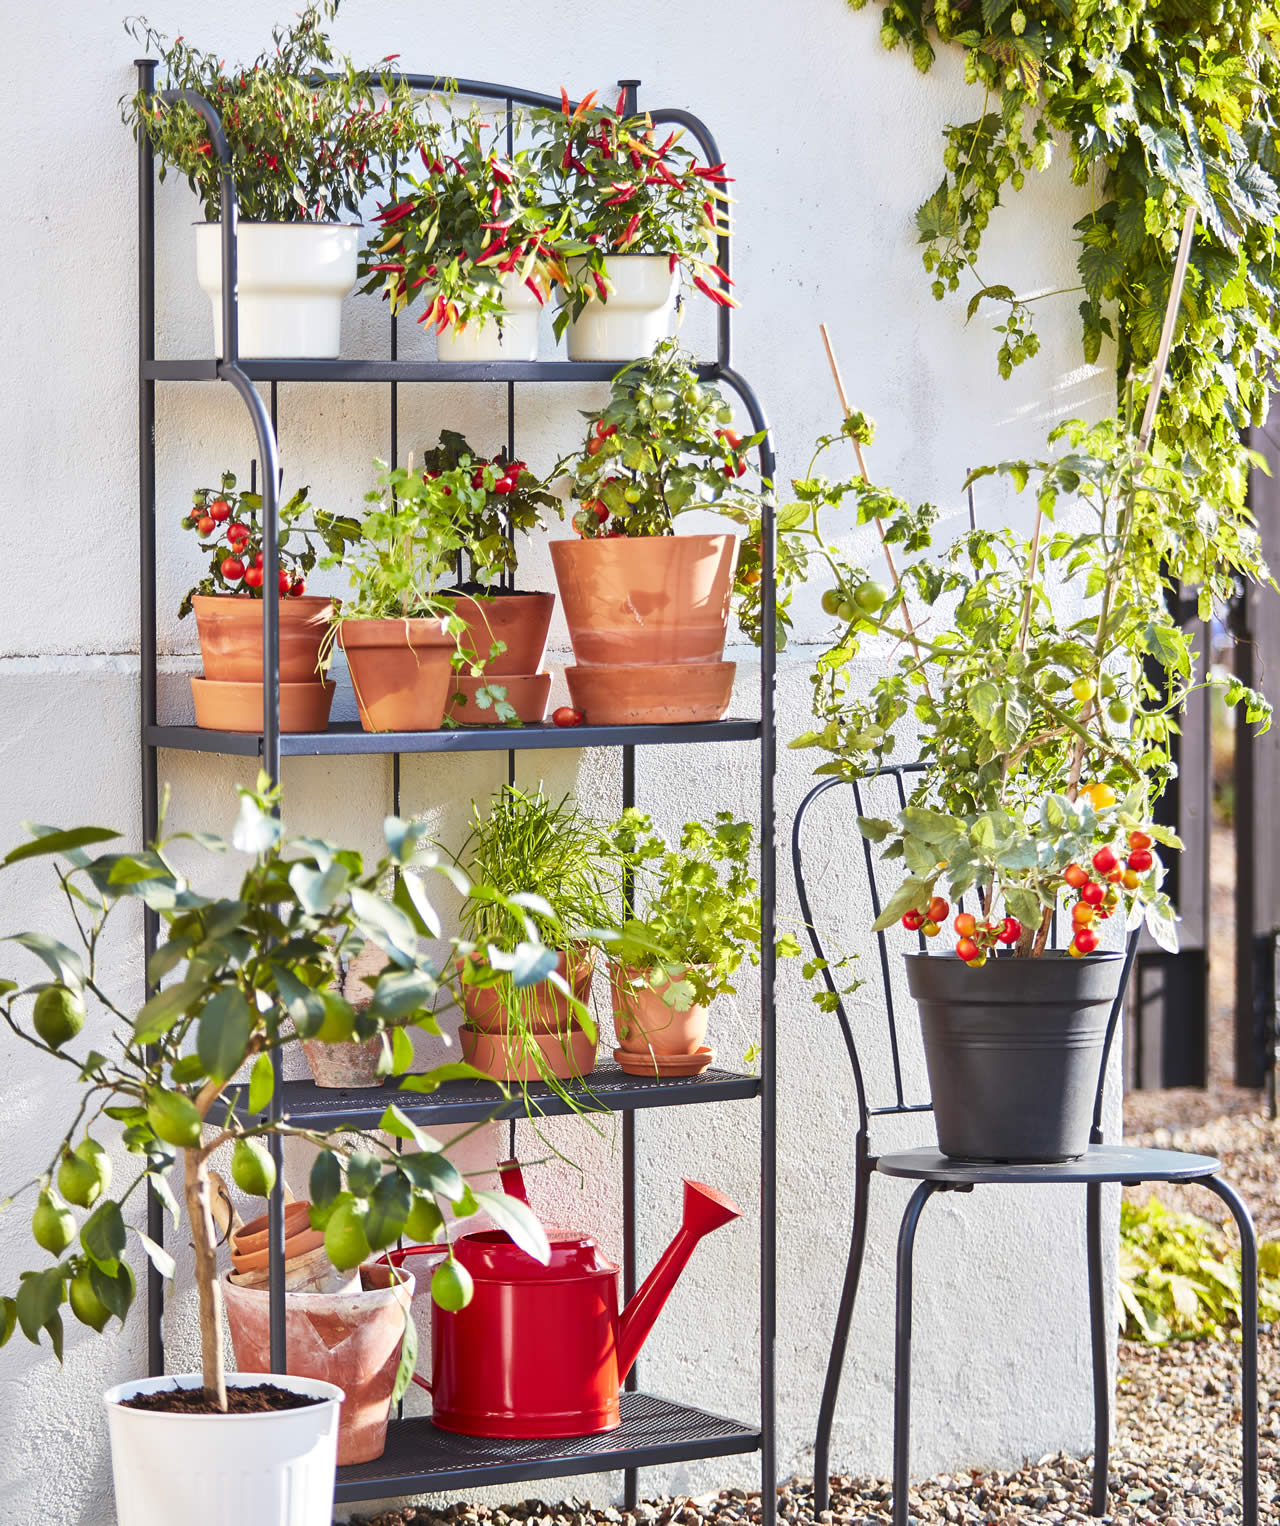 Ideas - It's the season for planting kits!